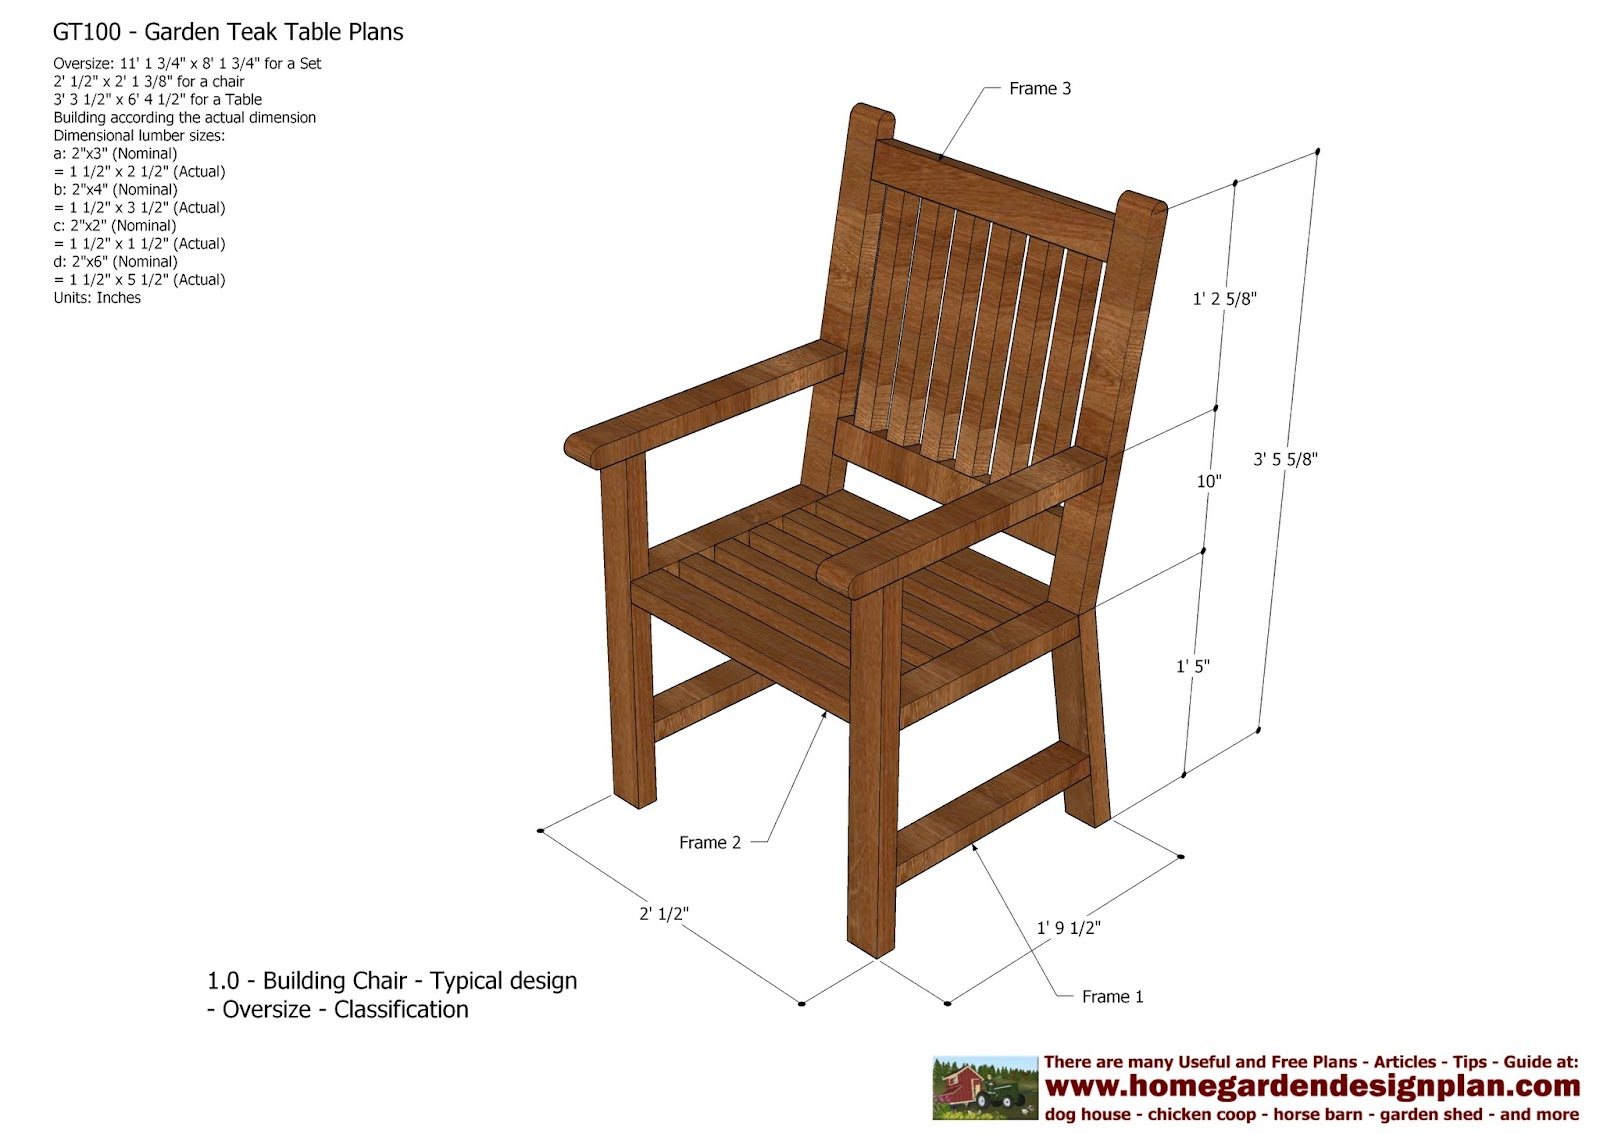 Outdoor furniture plans - Home Garden Plans Gt100 Garden Teak Tables Woodworking Plans Outdoor Furniture Plans